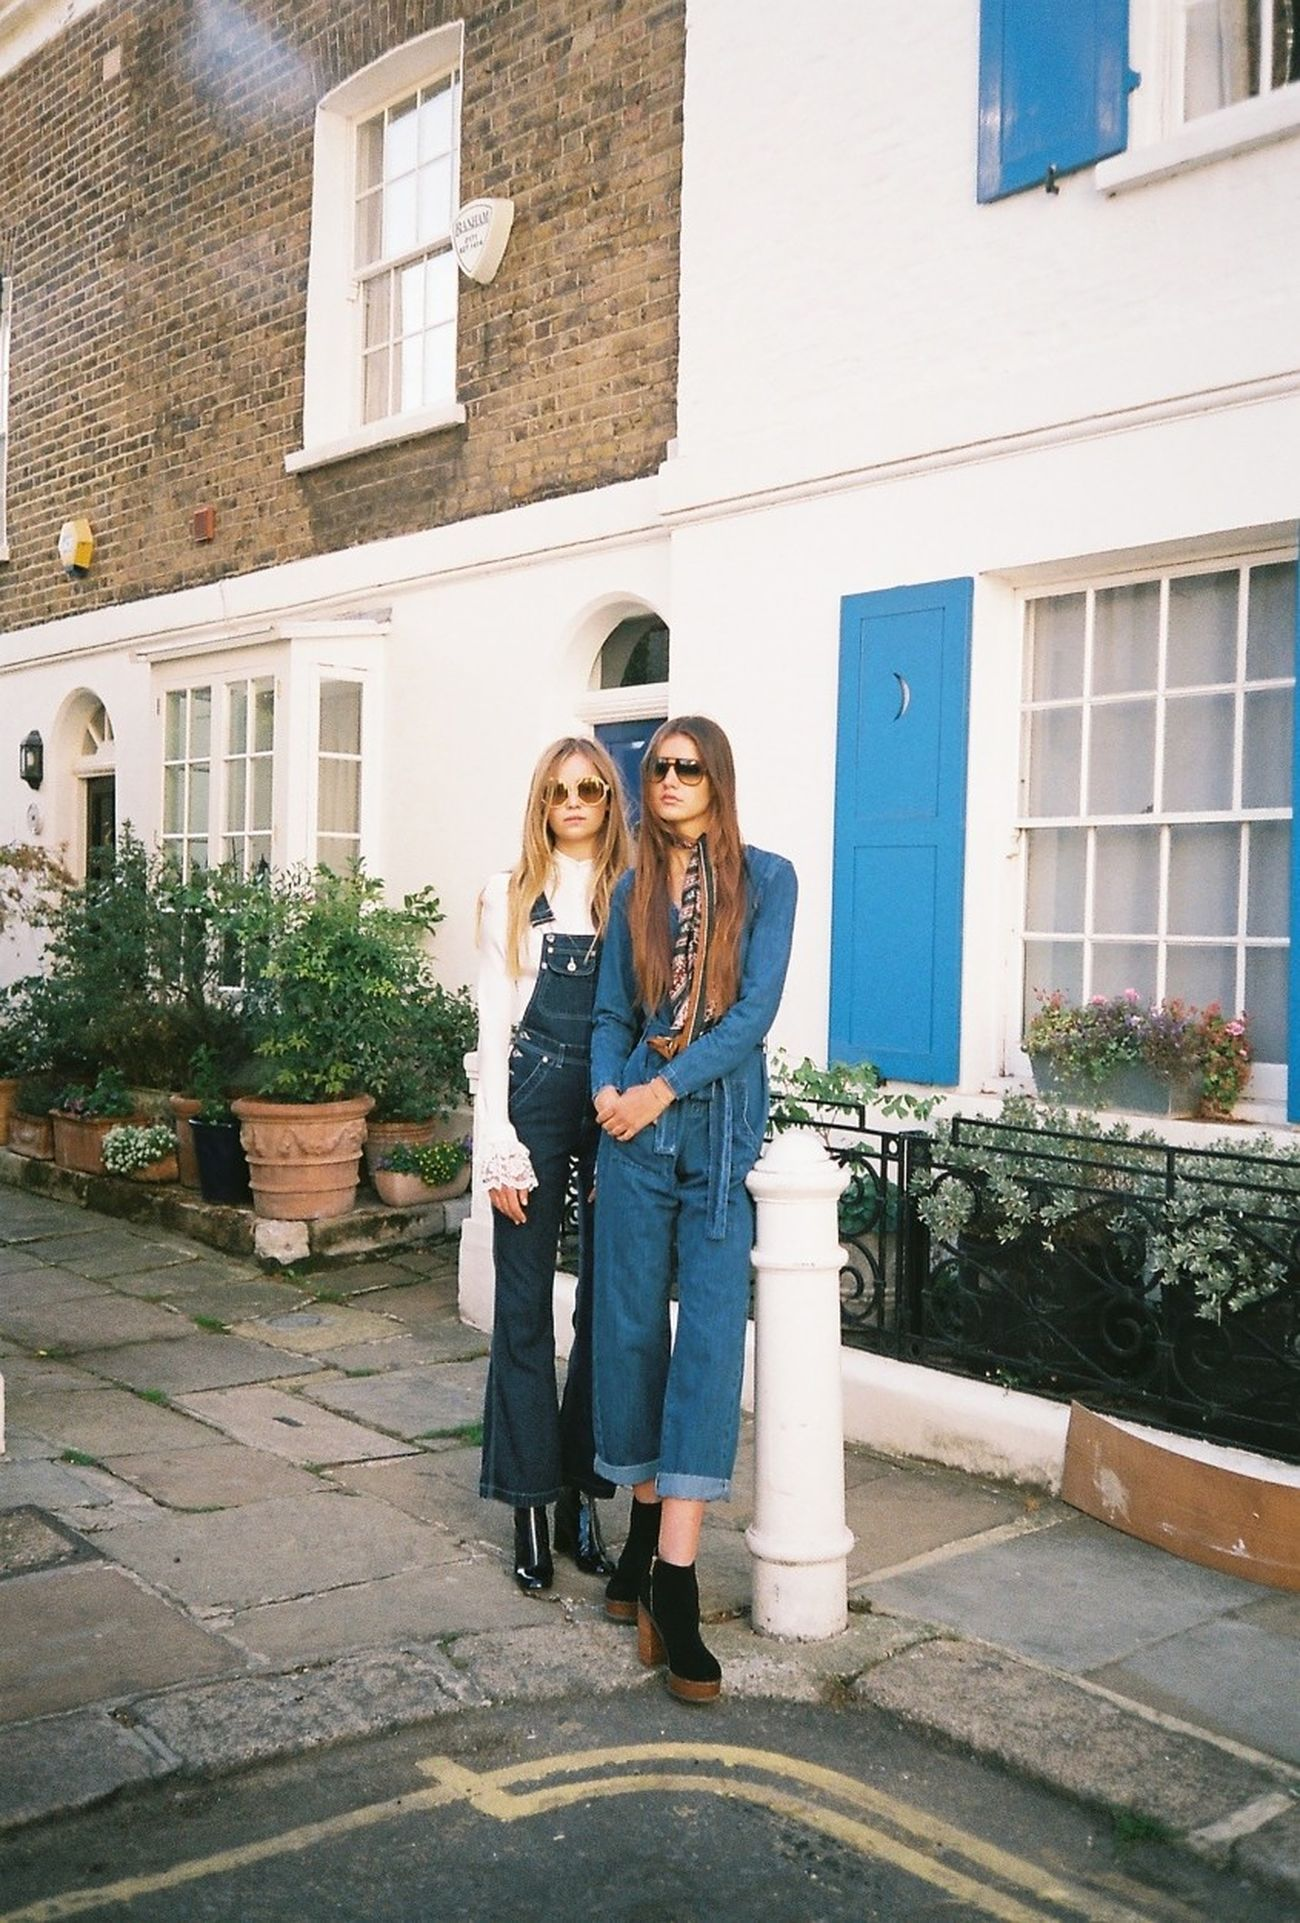 35mm 35mm Film Analogue Photography Architecture Building Building Exterior Denim Editorial  Fashion Fashion Editorial Fashion Photography Fashionphotography Film Photography Filmisnotdead Full Length Models Outdoors Sunglasses